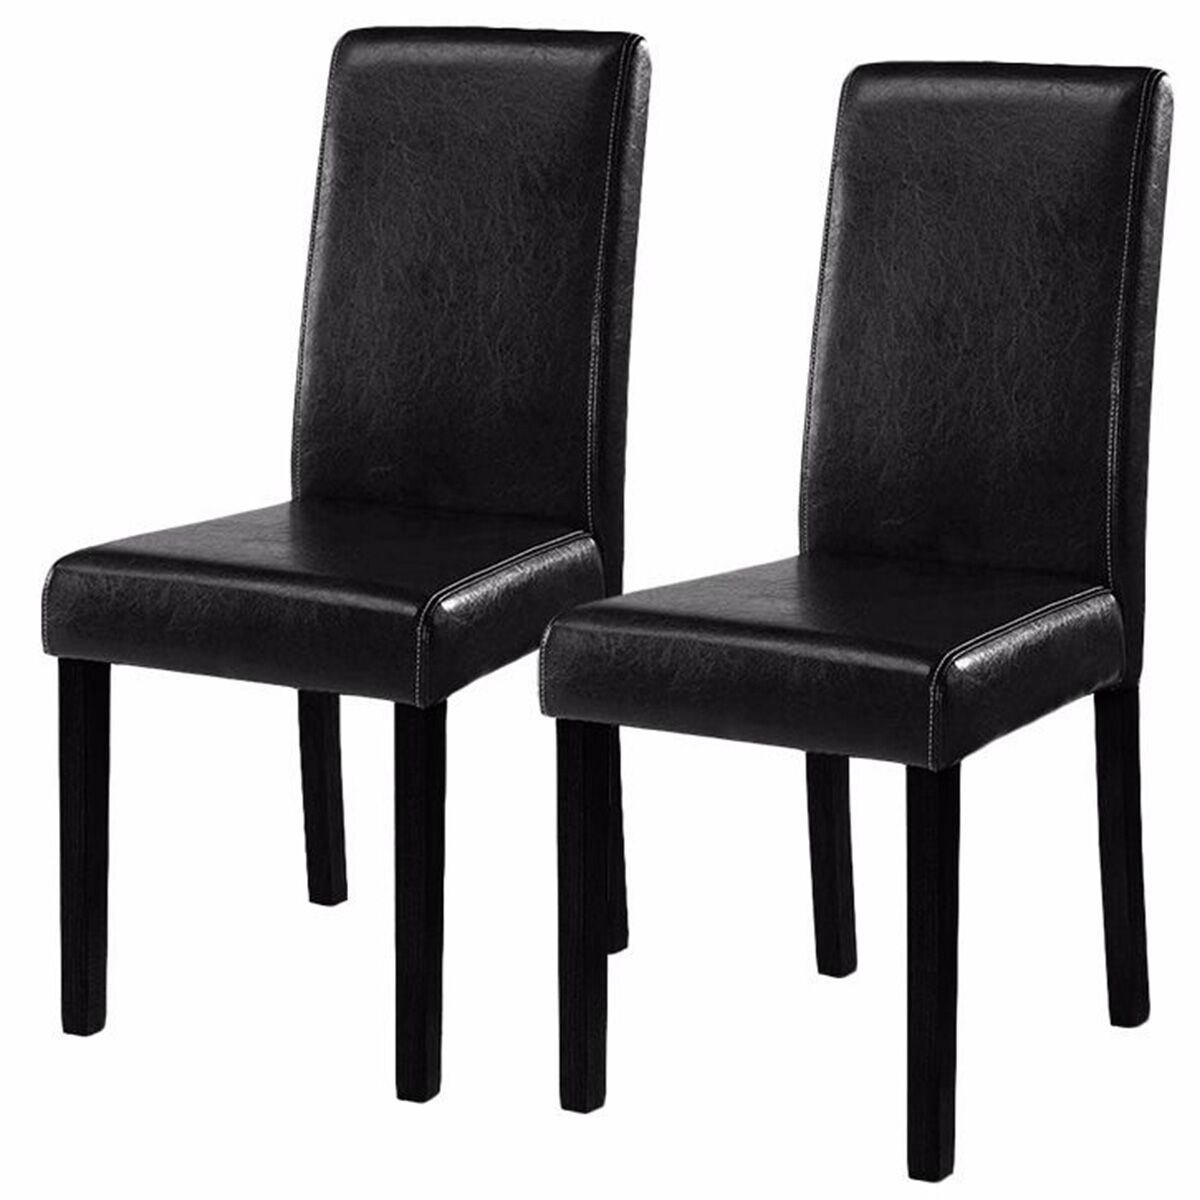 MasterPanel - Set of 2 Black Elegant Design Leather Contemporary Dining Chairs Home Room #TP3237